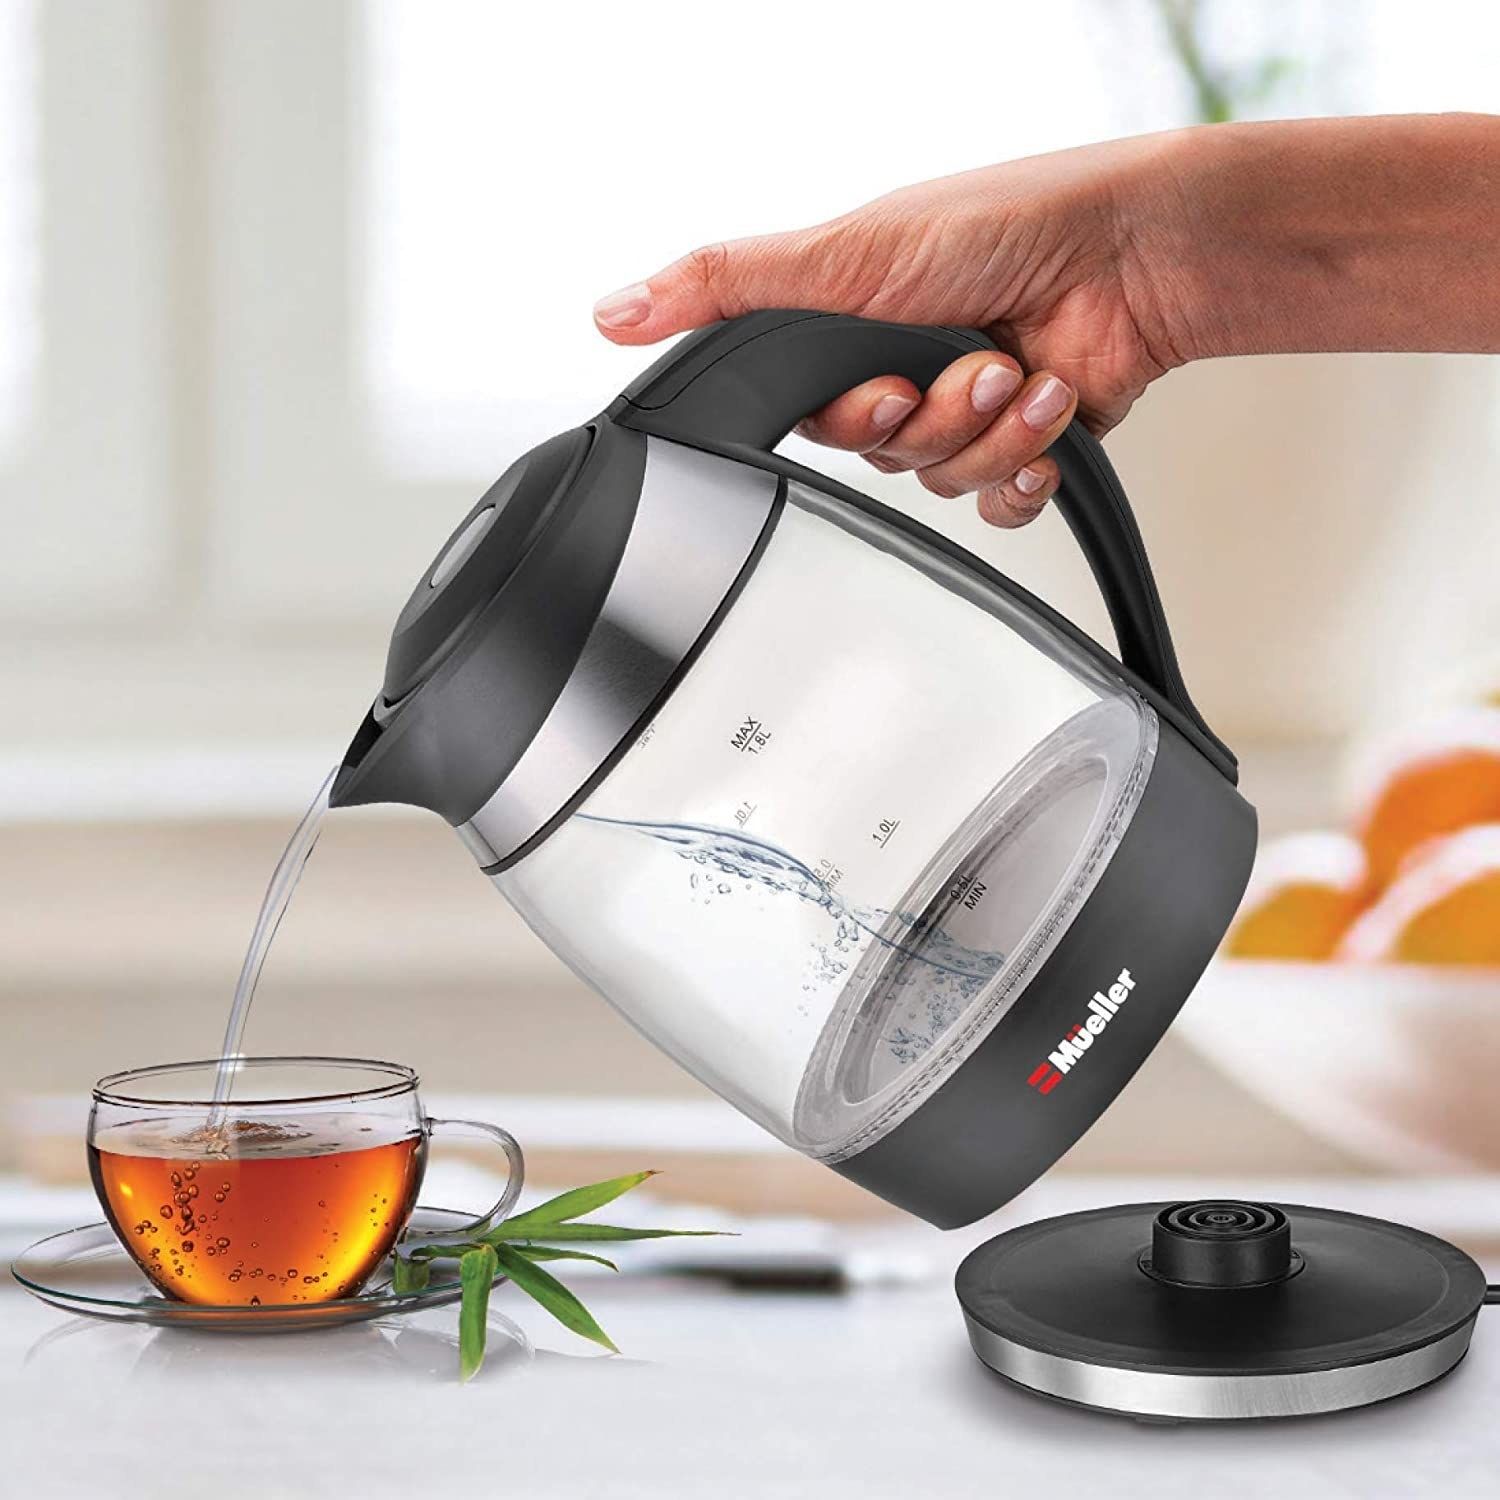 Model's hand pouring tea kettle with black base and lid